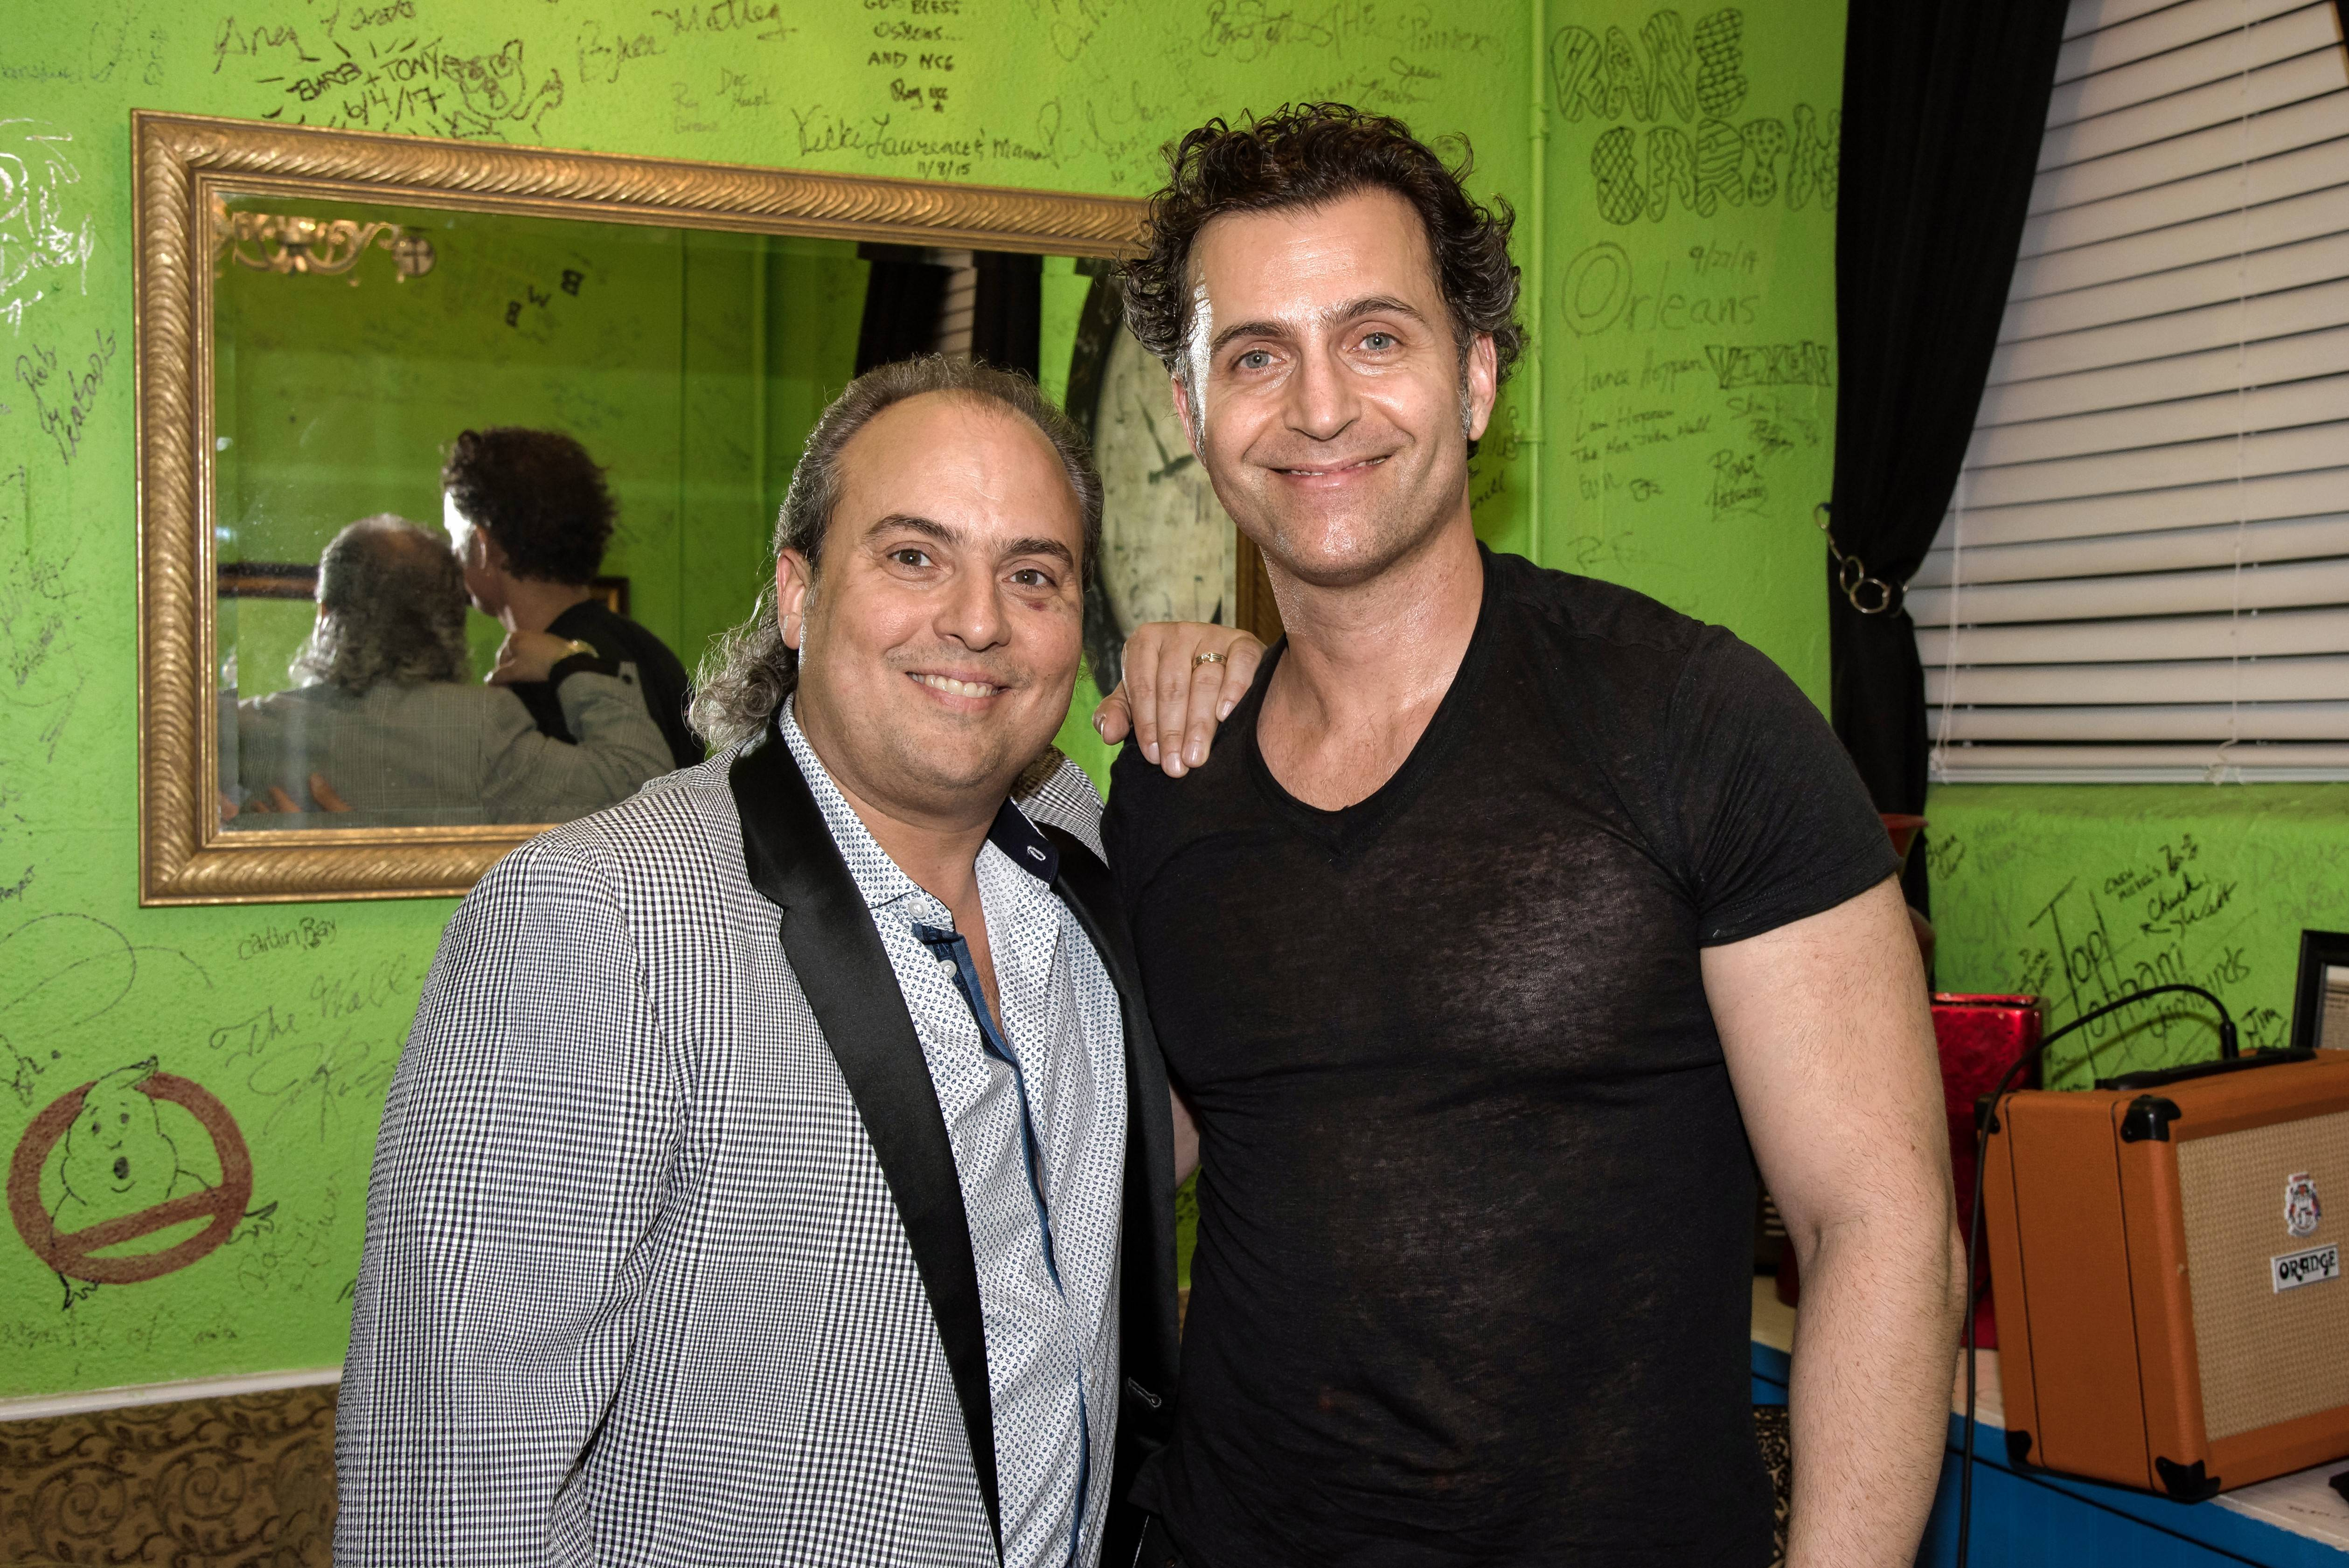 Ron Onesti, left, recently welcomed musician Dweezil Zappa to the Arcada Theatre in St. Charles, where he performed a tribute to his father, Frank Zappa, and also taught a master class in guitar.